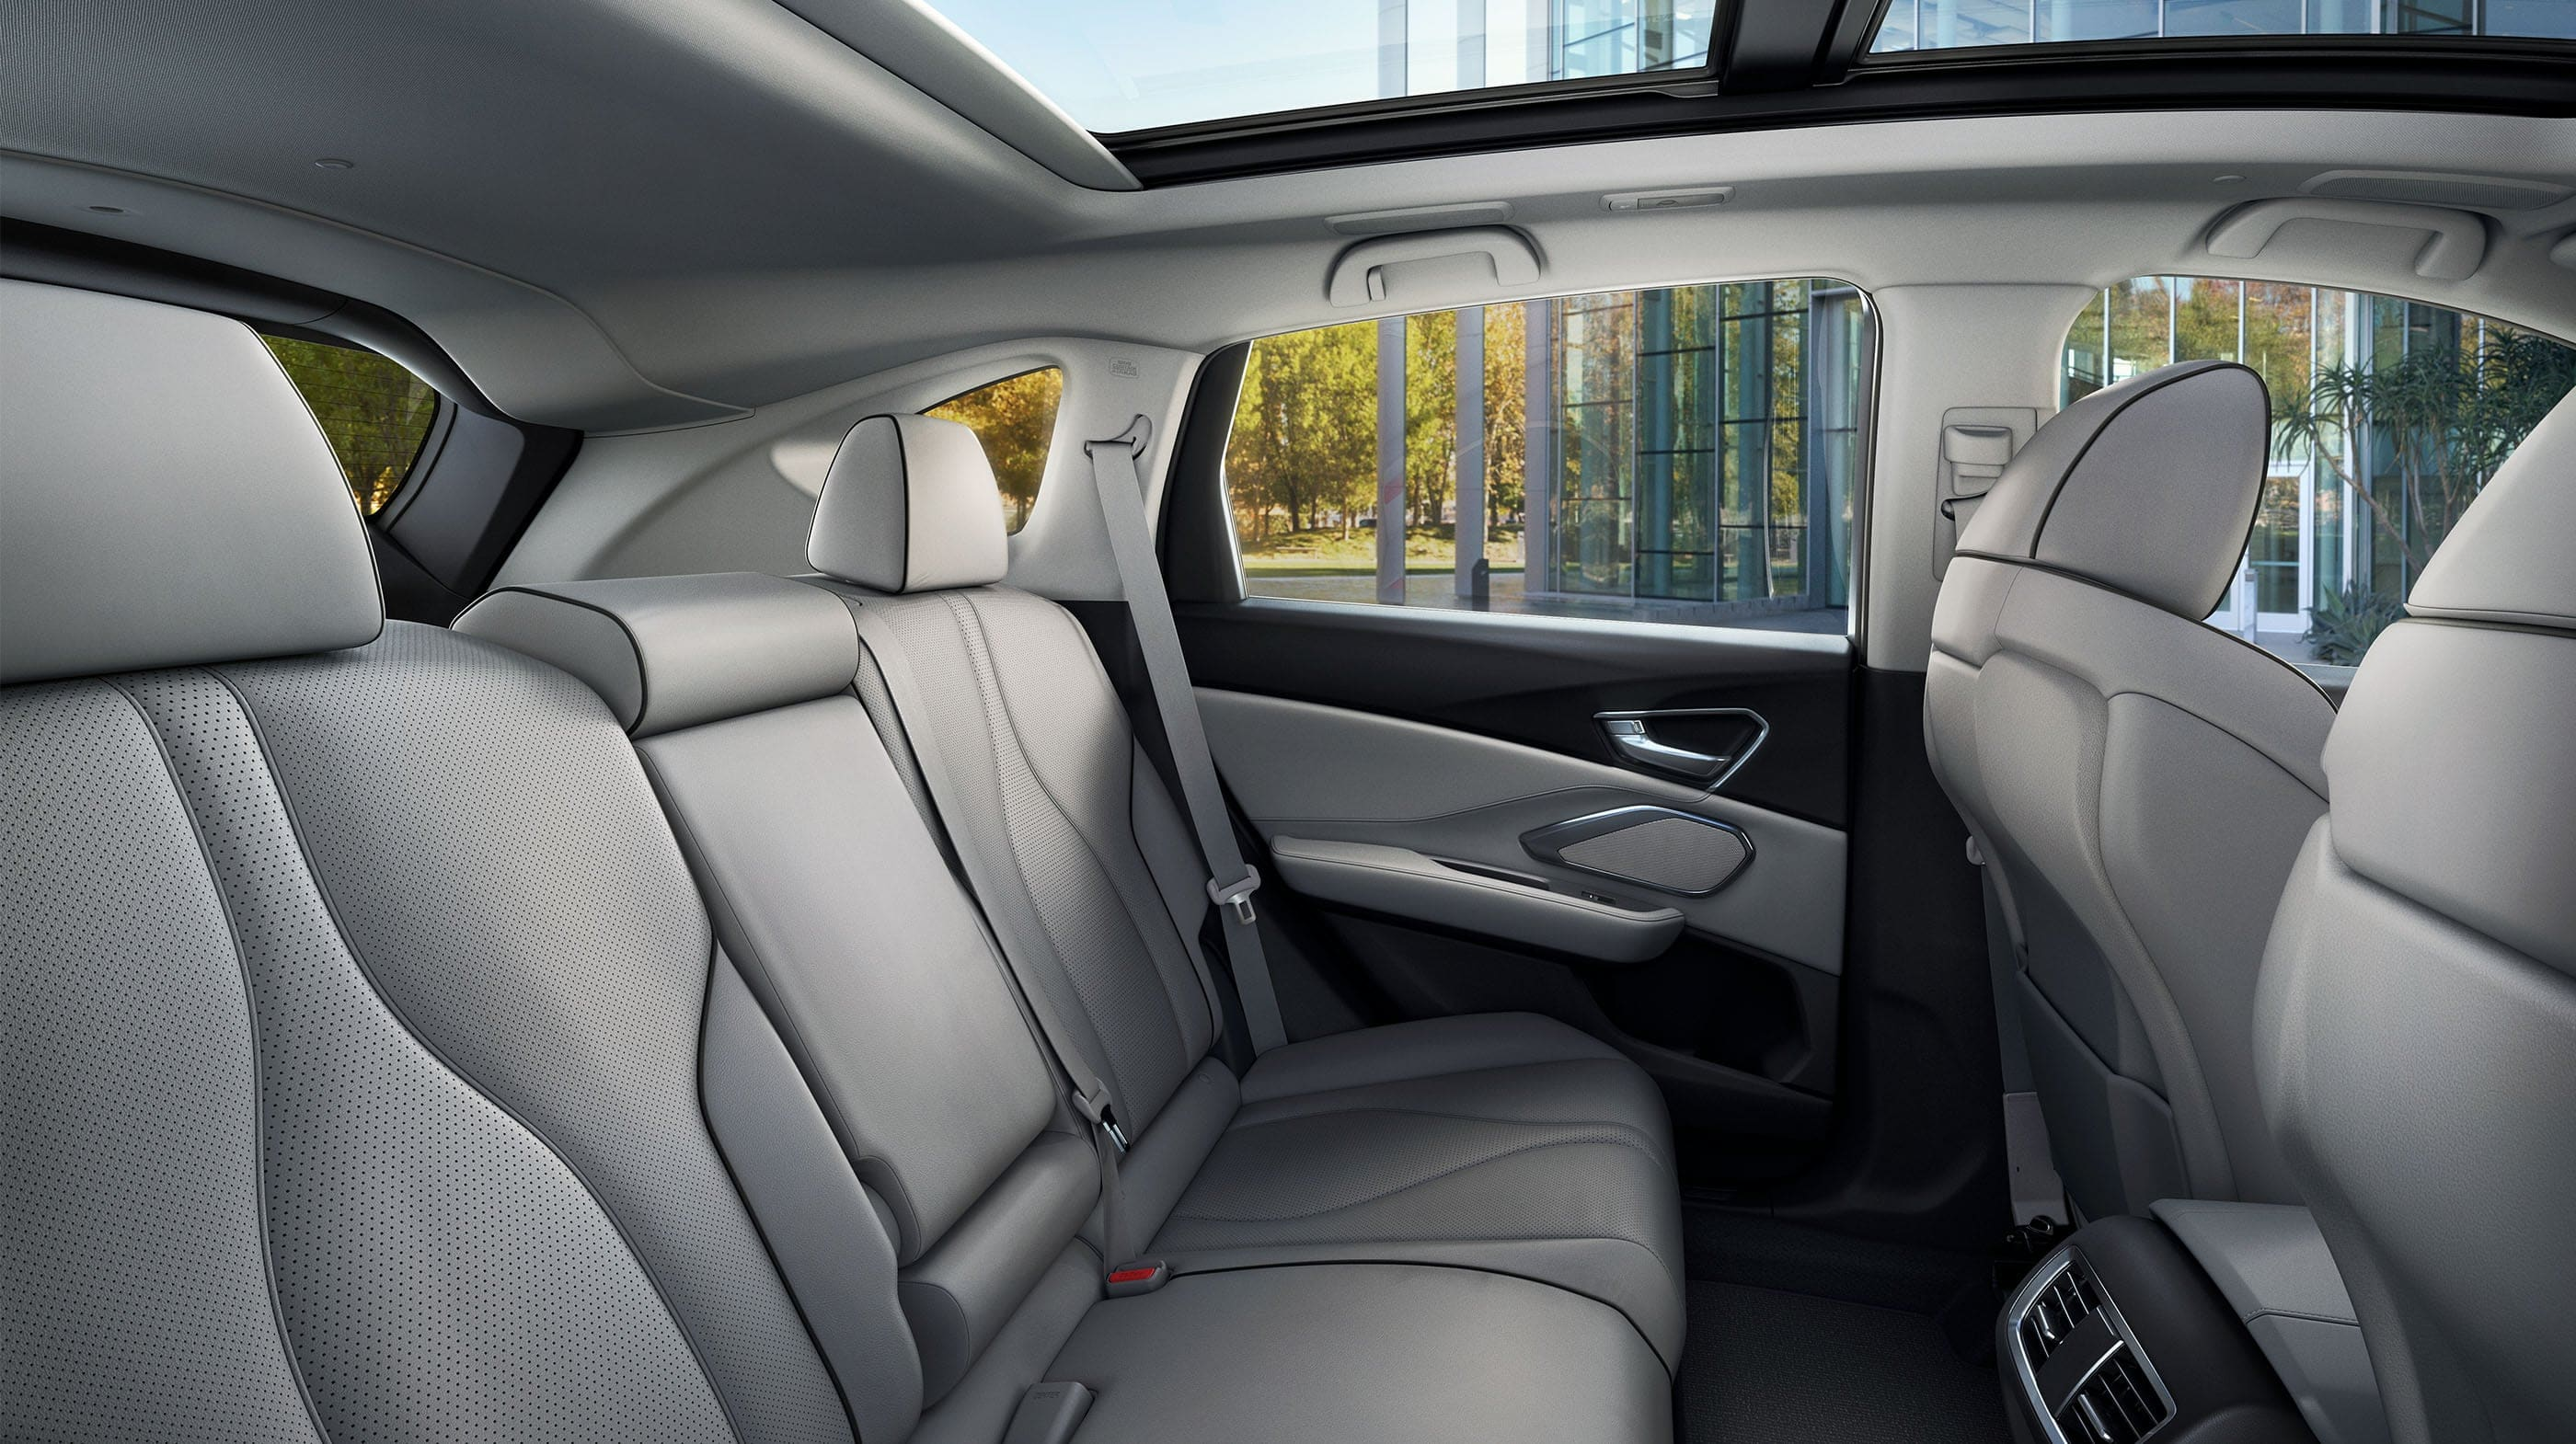 Enjoy the Epitome of Comfort in the RDX!